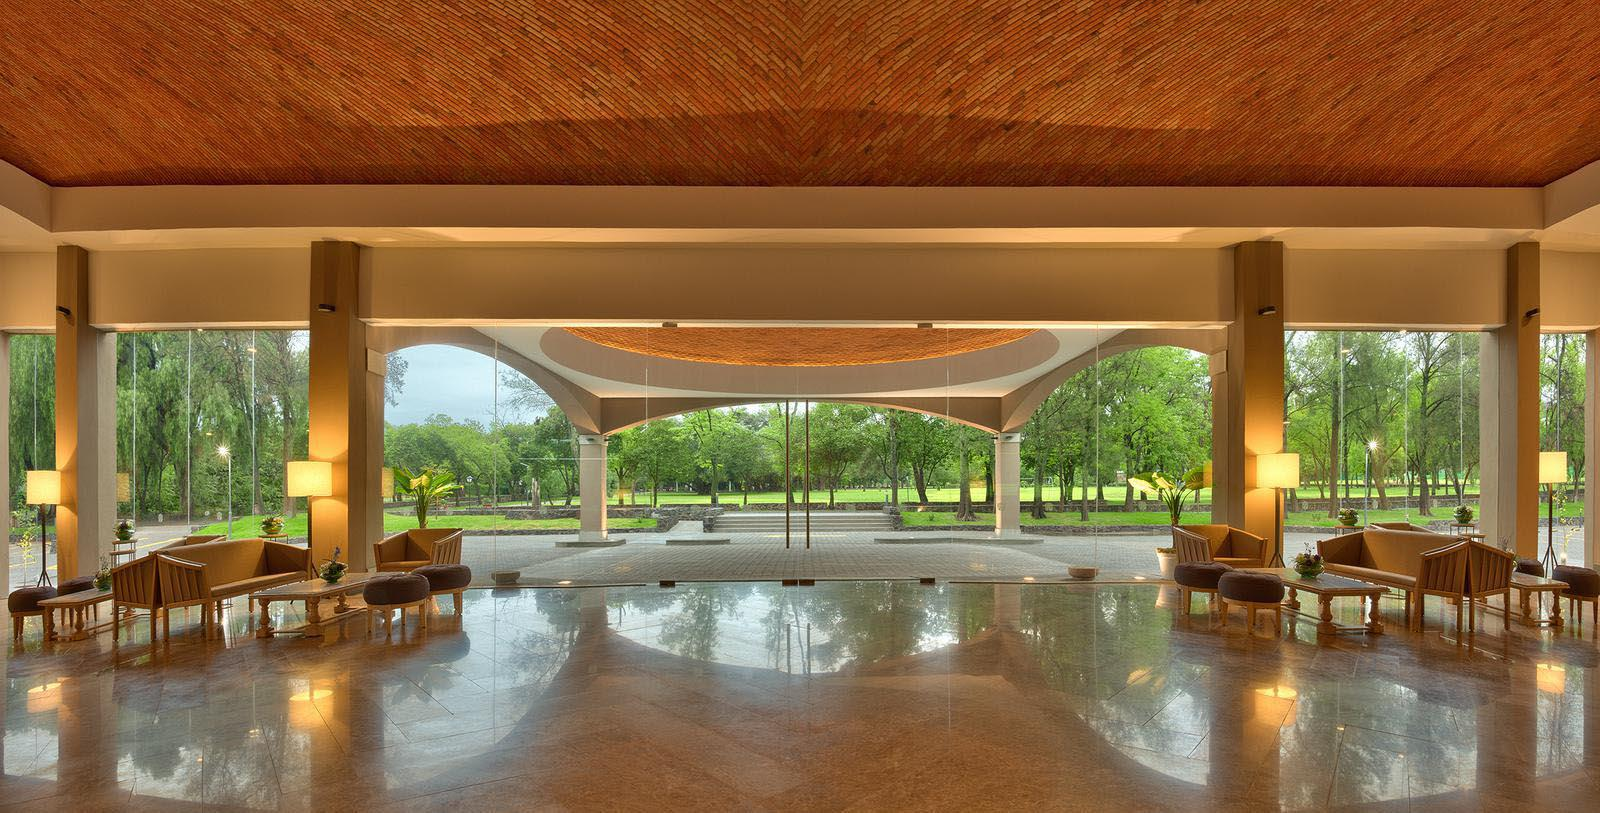 Image of Lobby, Hacienda Jurica by Brisas, Queretaro, Mexico, 1551, Member of Historic Hotels Worldwide, Experience